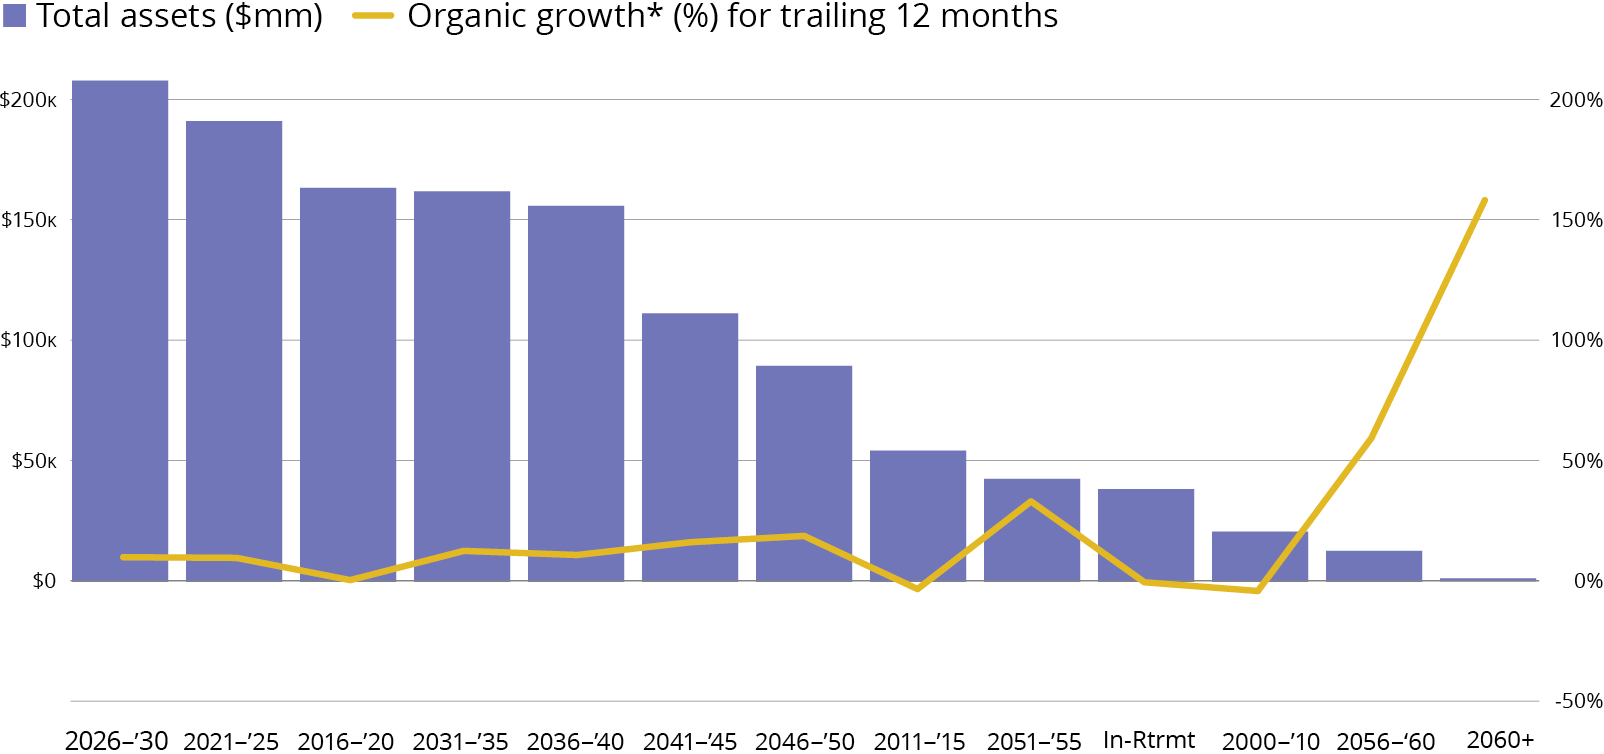 Target-Date Fund Organic Growth, by Objective